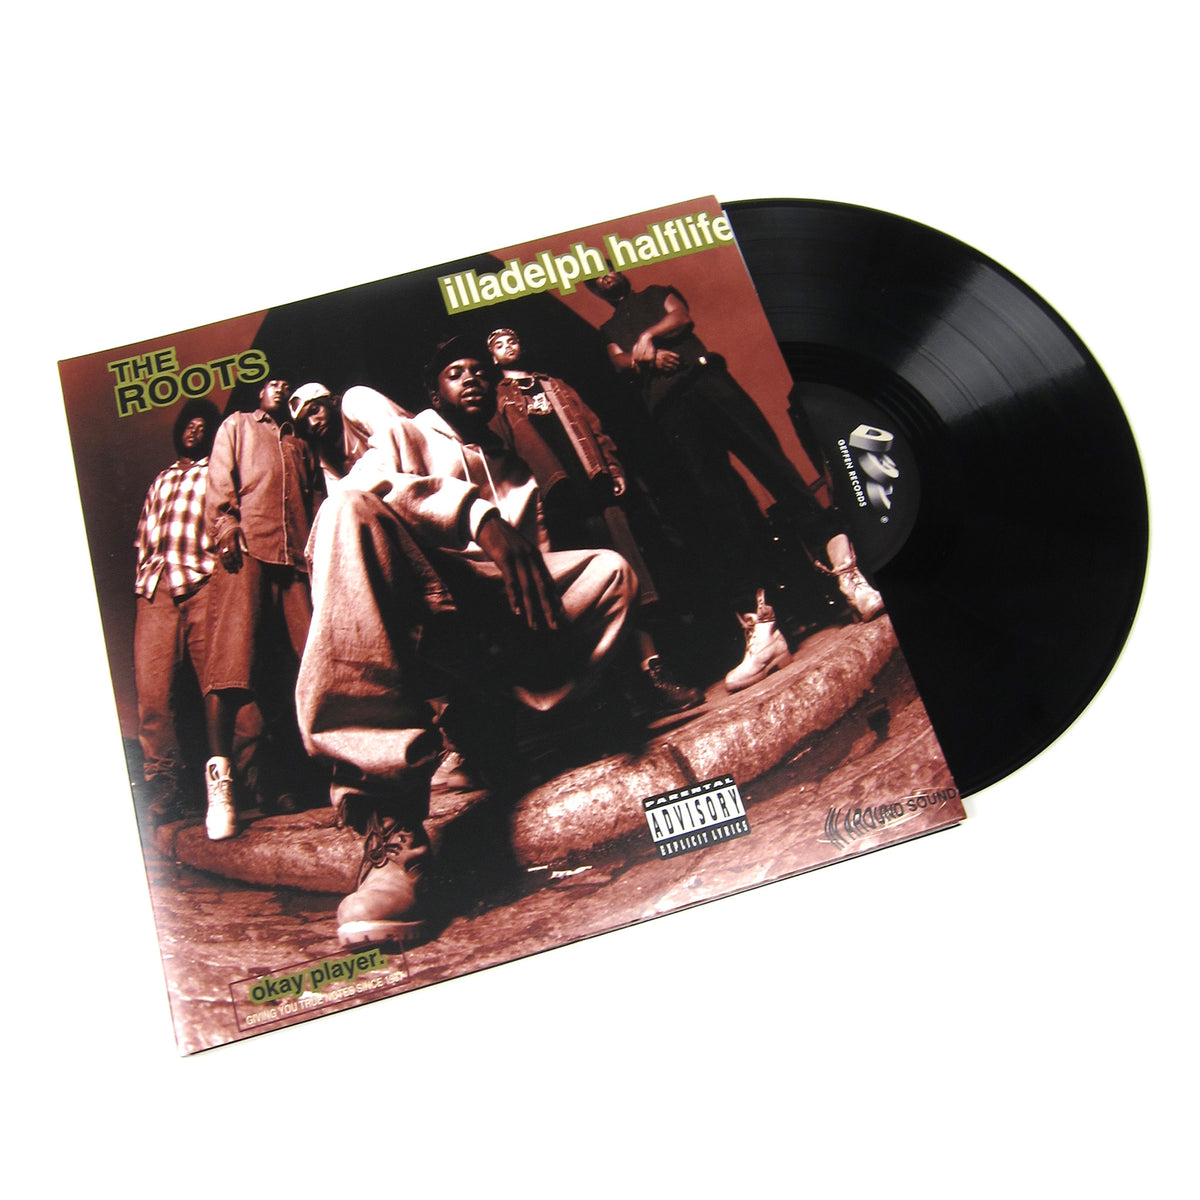 The Roots: Illadelph Halflife Vinyl 2LP